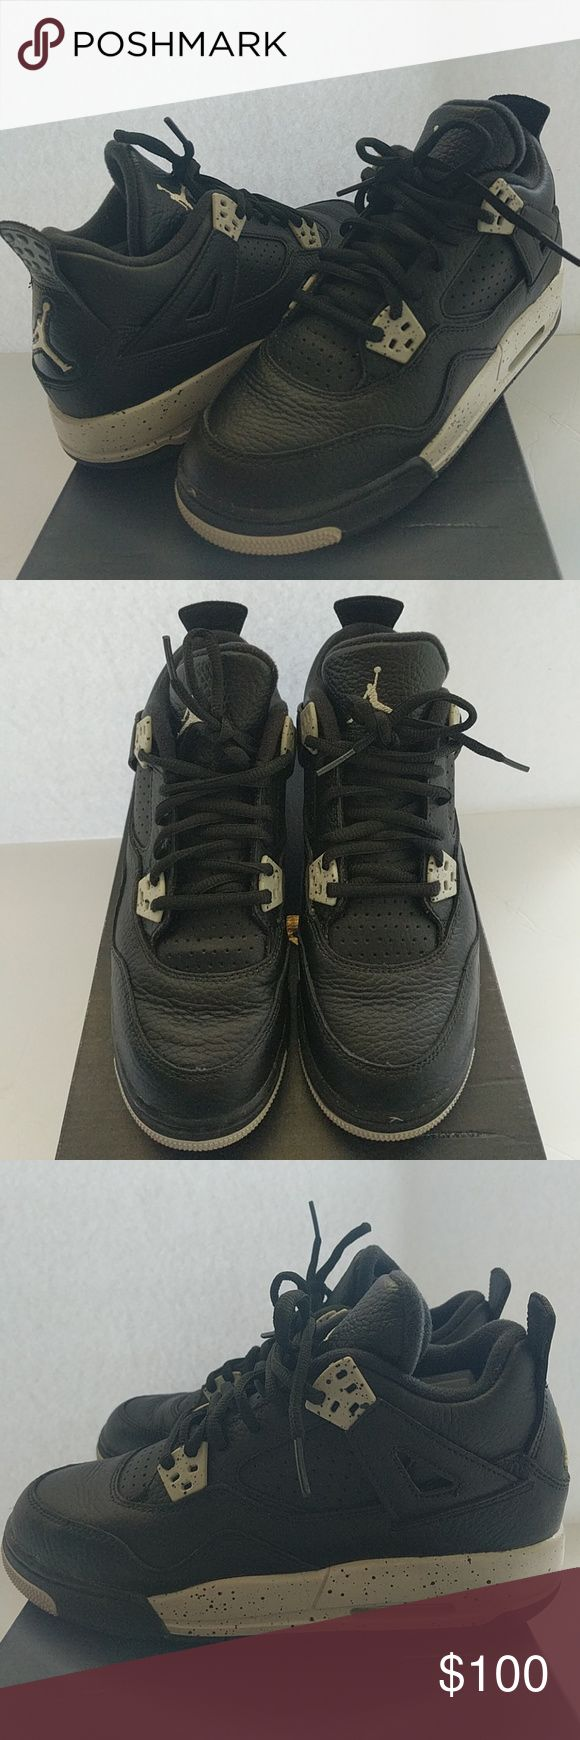 Jordan Retro 4 Oreo Comes in original box! Like new GRADE SCHOOL Jordan Retro 4. 'Oreo' Only worn once, but they look pretty much new. Just has slight creasing on toe and back flap.  Size 4.5 in YOUTH, but can fit Women's size 6 . Jordan Shoes